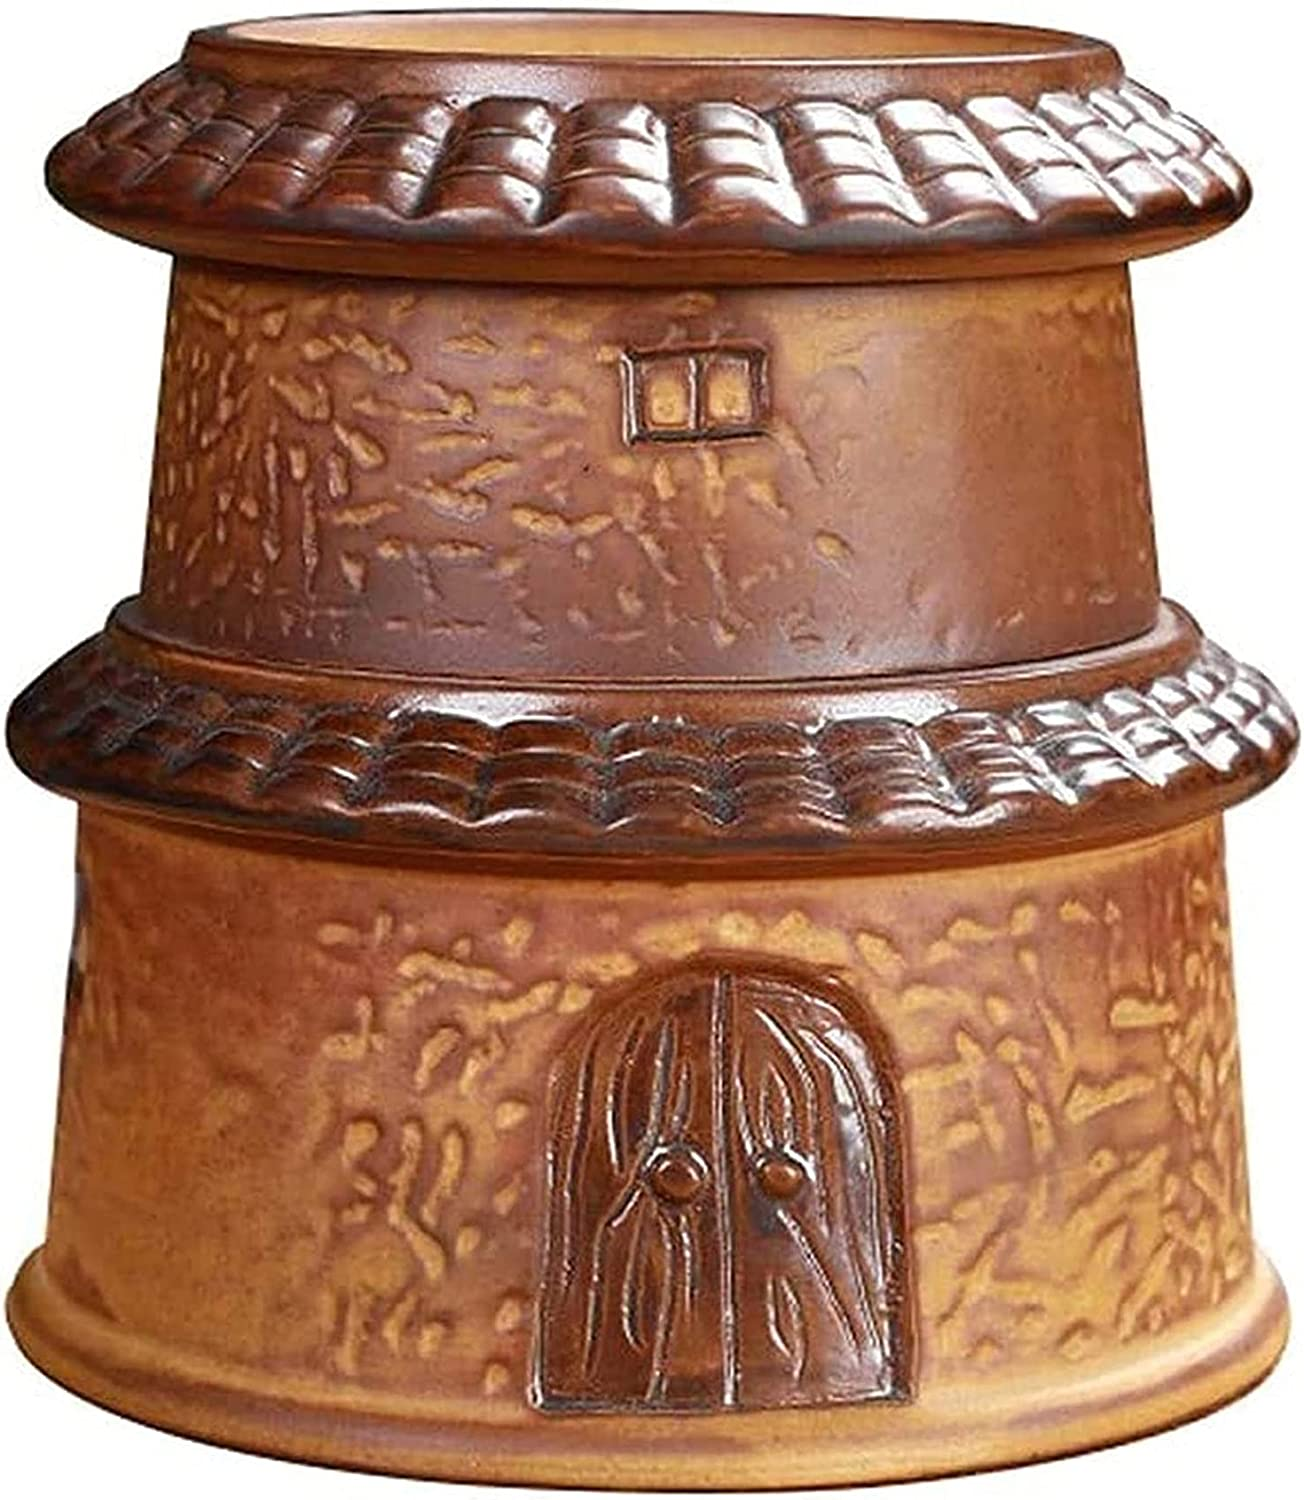 MTFZD Ceramic Cremation Urn Seattle Mall Outlet sale feature Memorial and P Human for Funeral